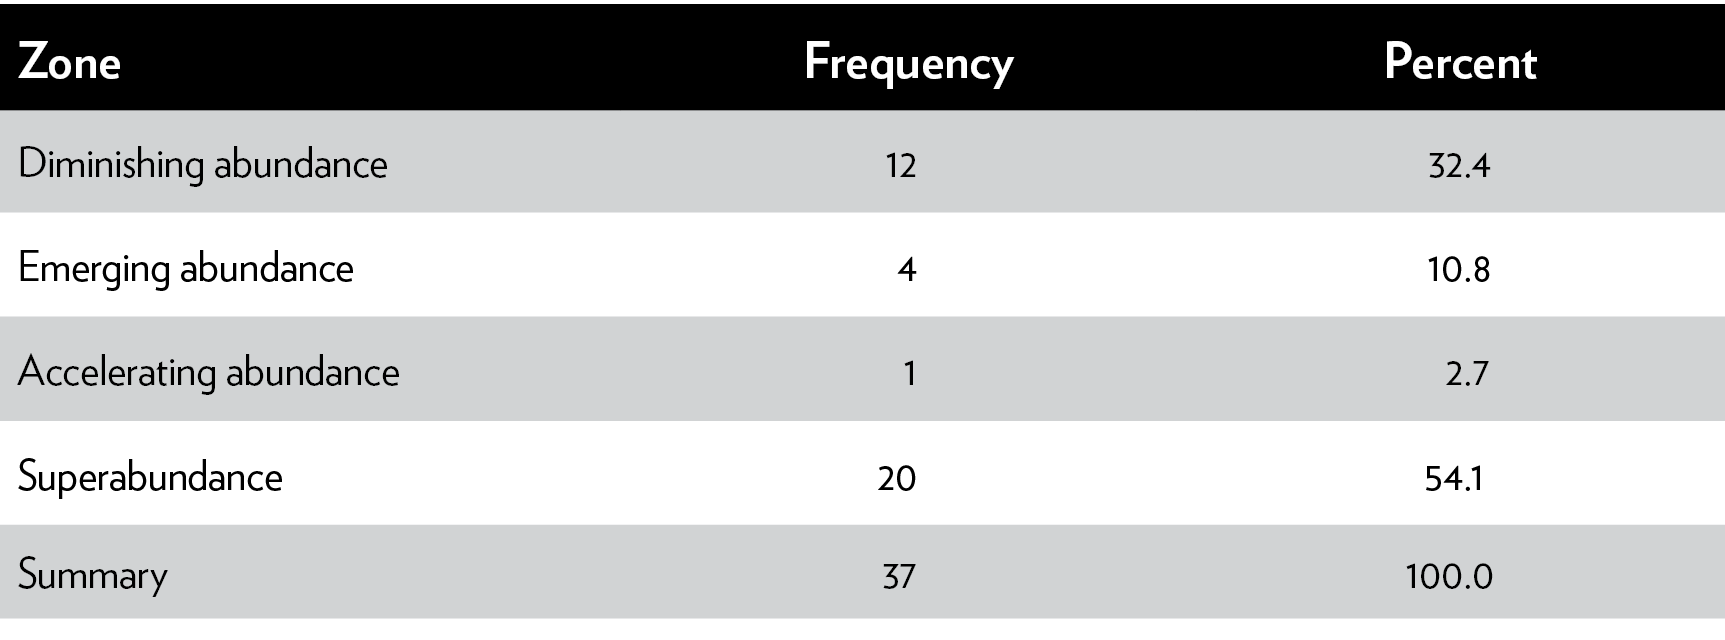 35f6493f41 Table 2  Frequency of PEP values based on the Simon Abundance Framework  zones